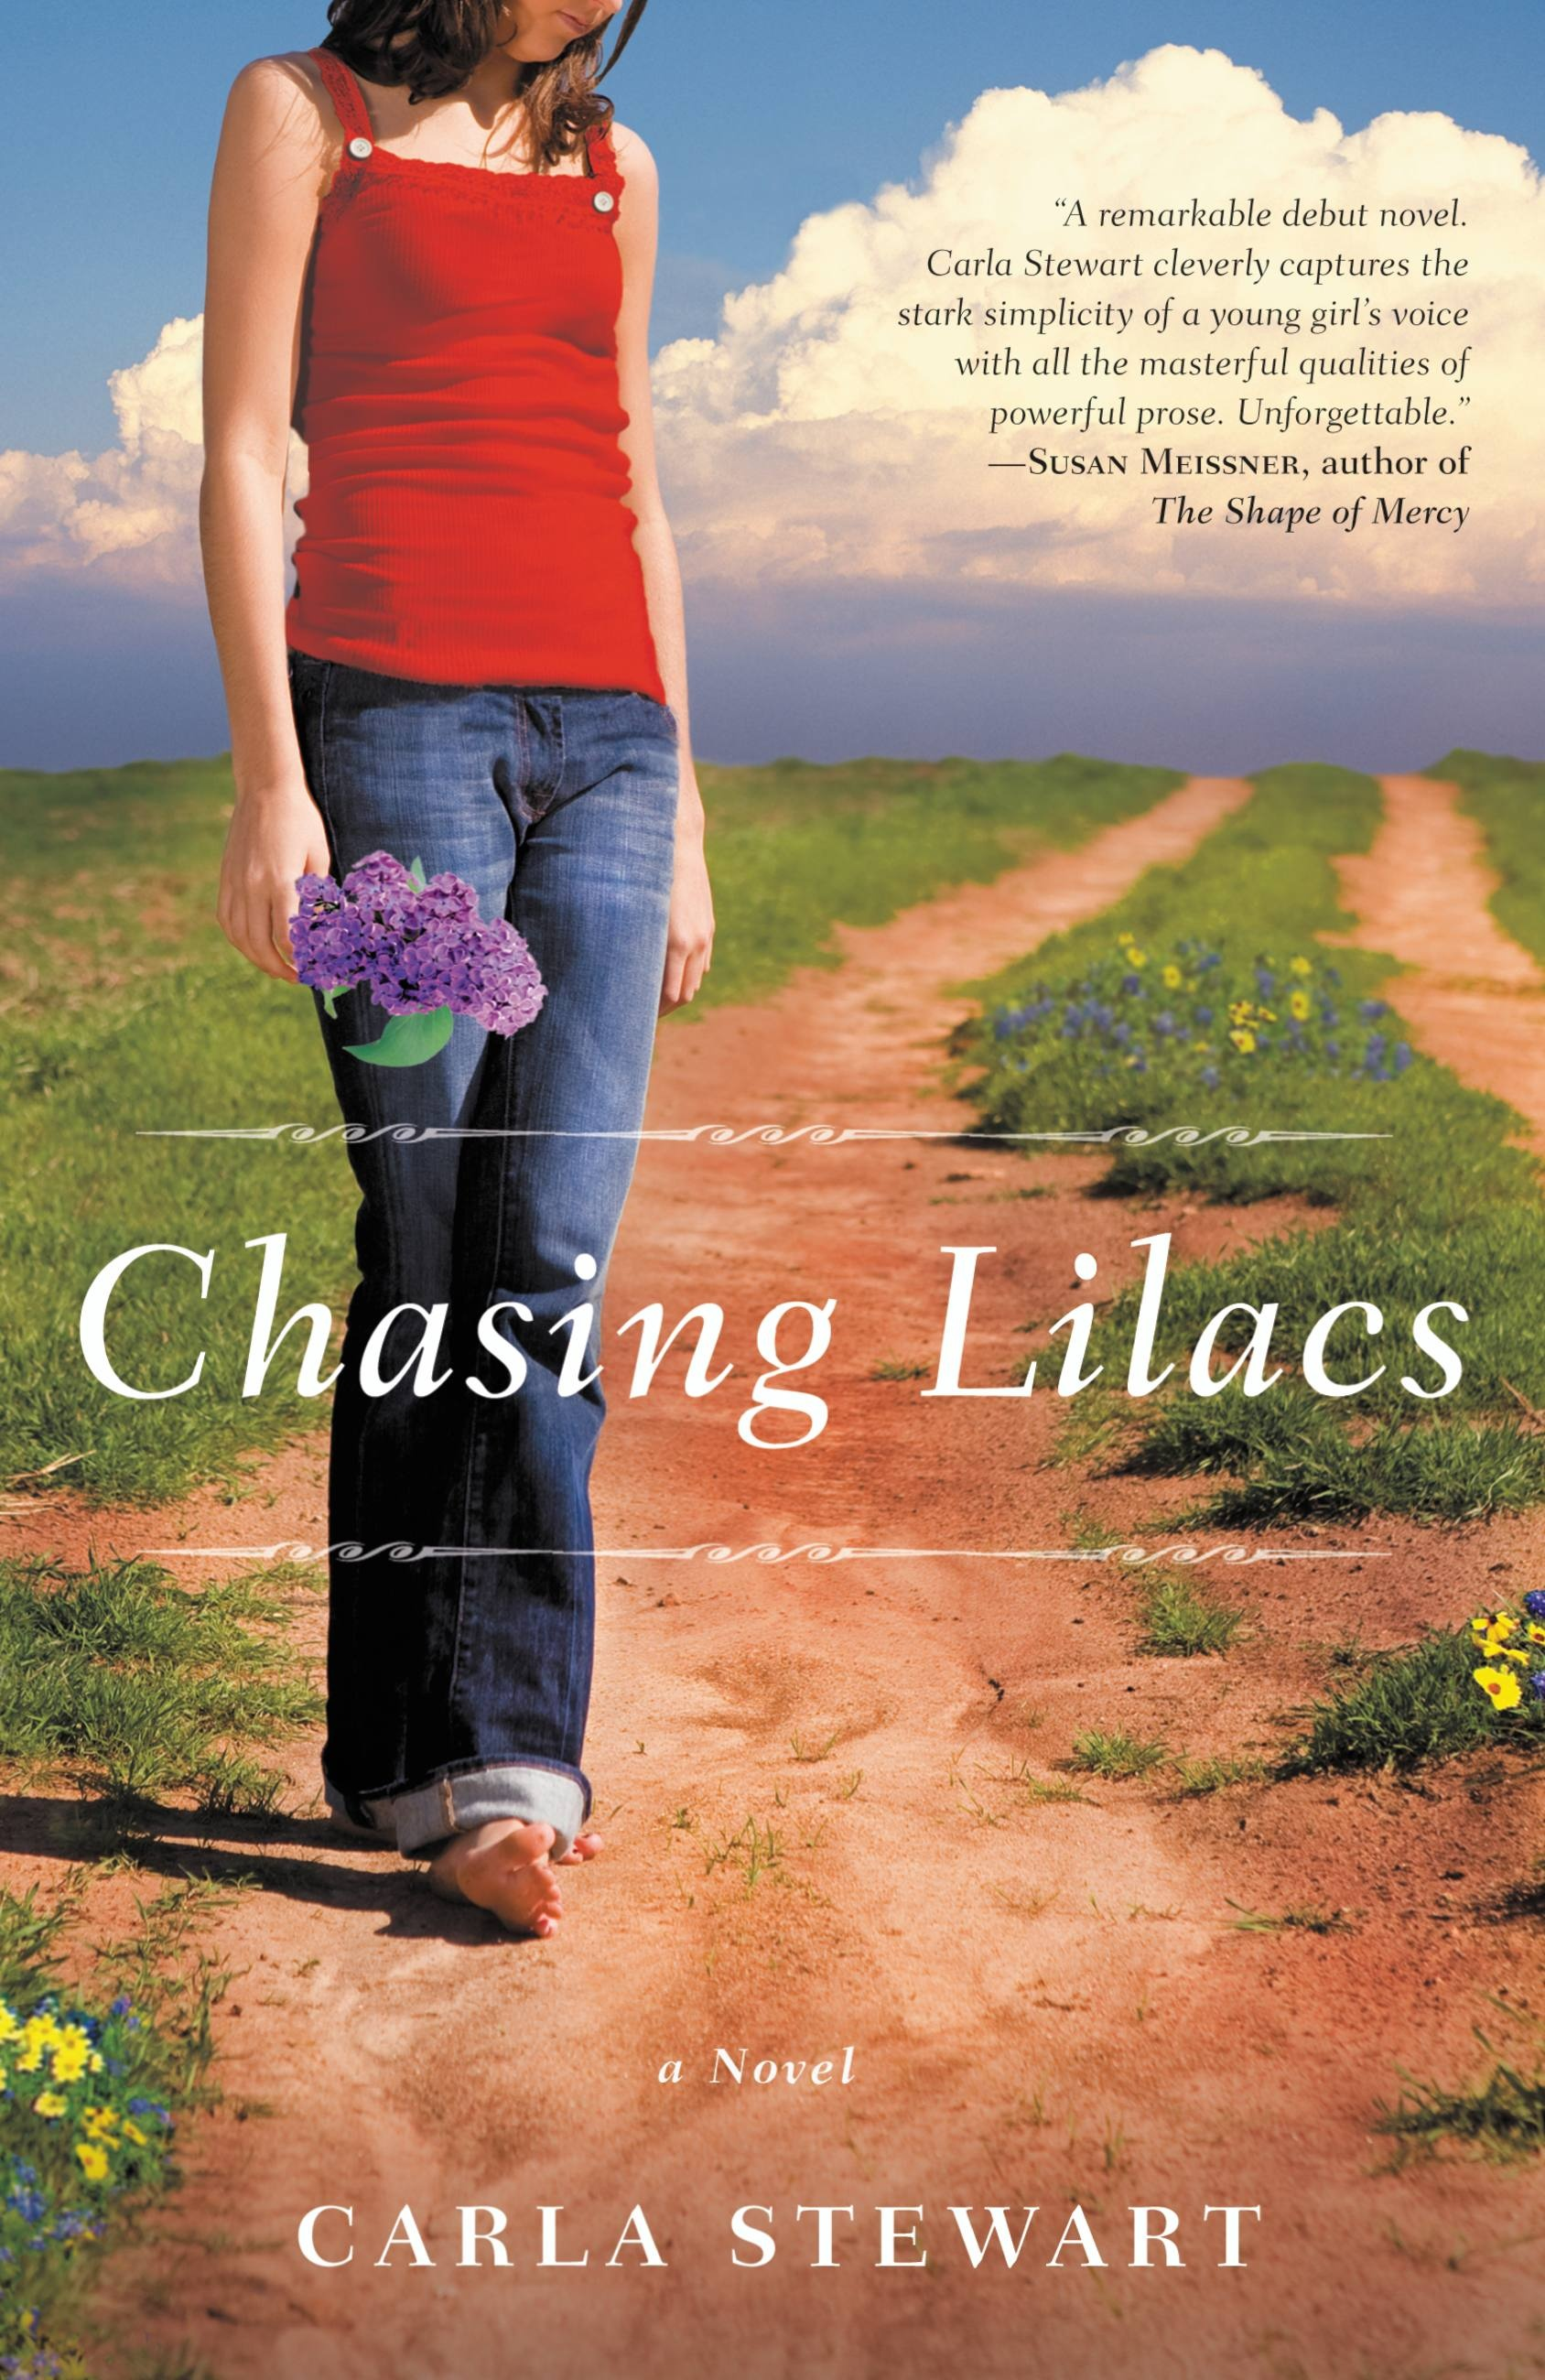 Chasing Lilacs by Carla Stewart | Hachette Book Group